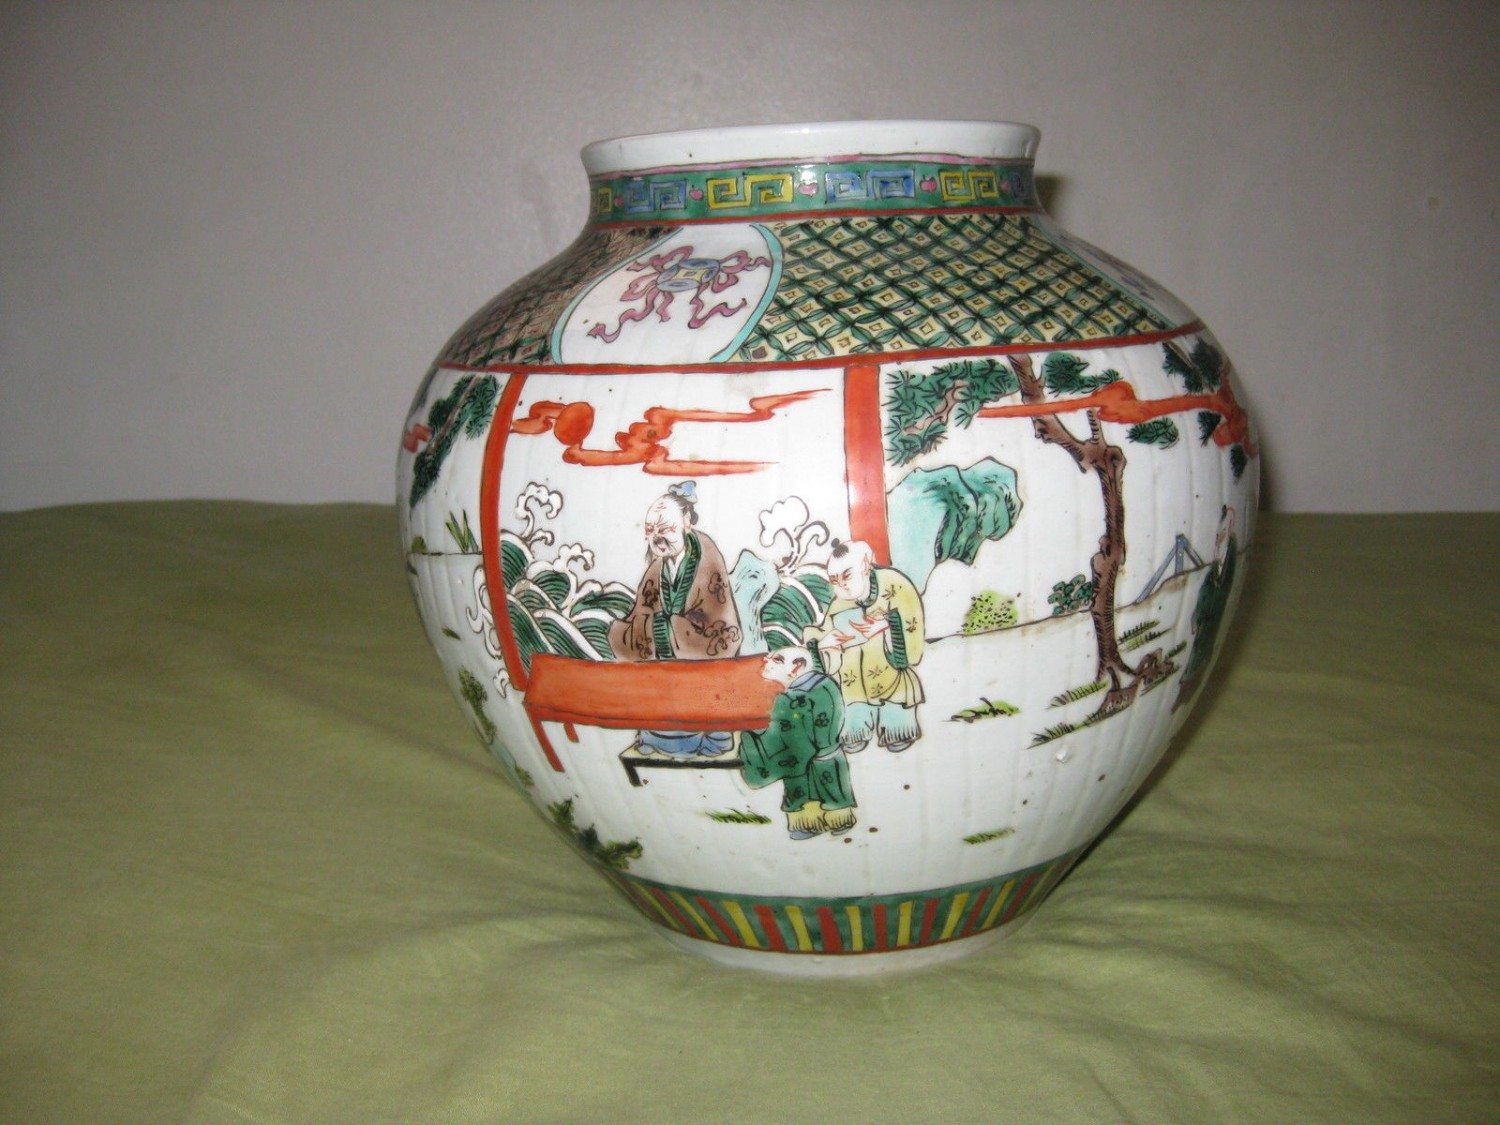 ANTIQUE CHINESE PORCELAIN POT WITH YONGZHENG MARK, 19TH CENTURY.